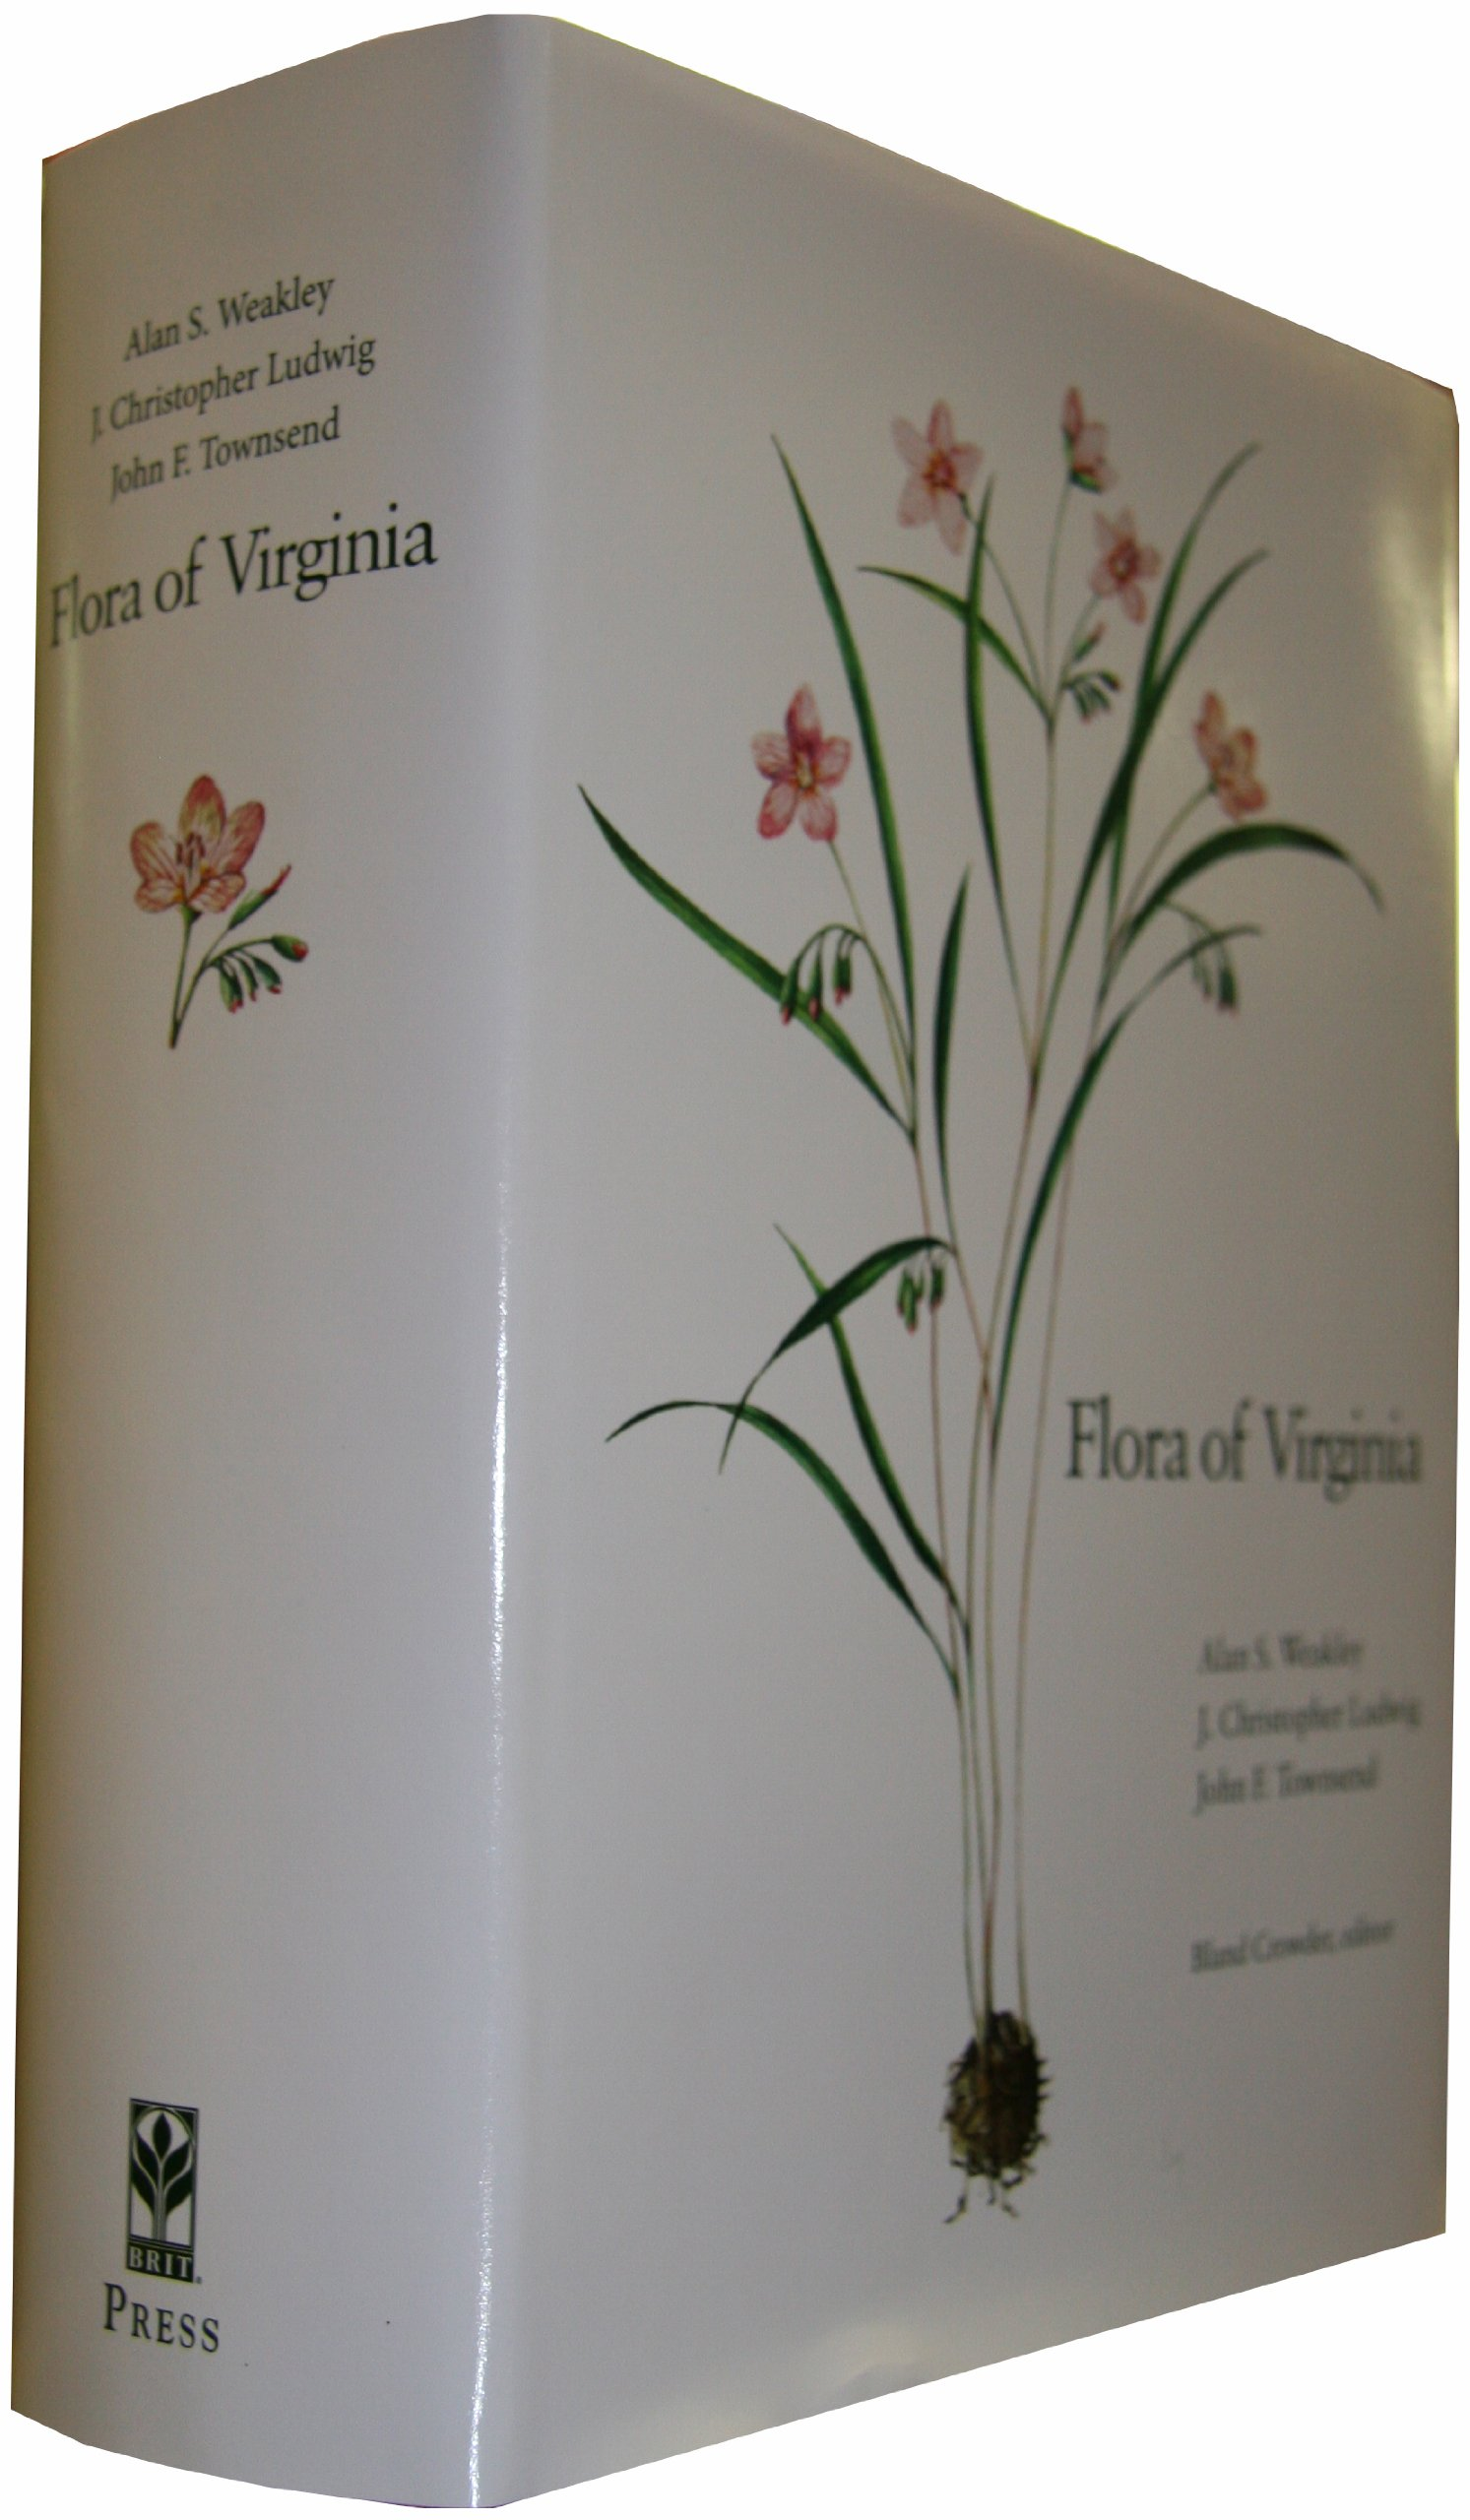 Flora of Virginia by Botanical Research Inst of Texas